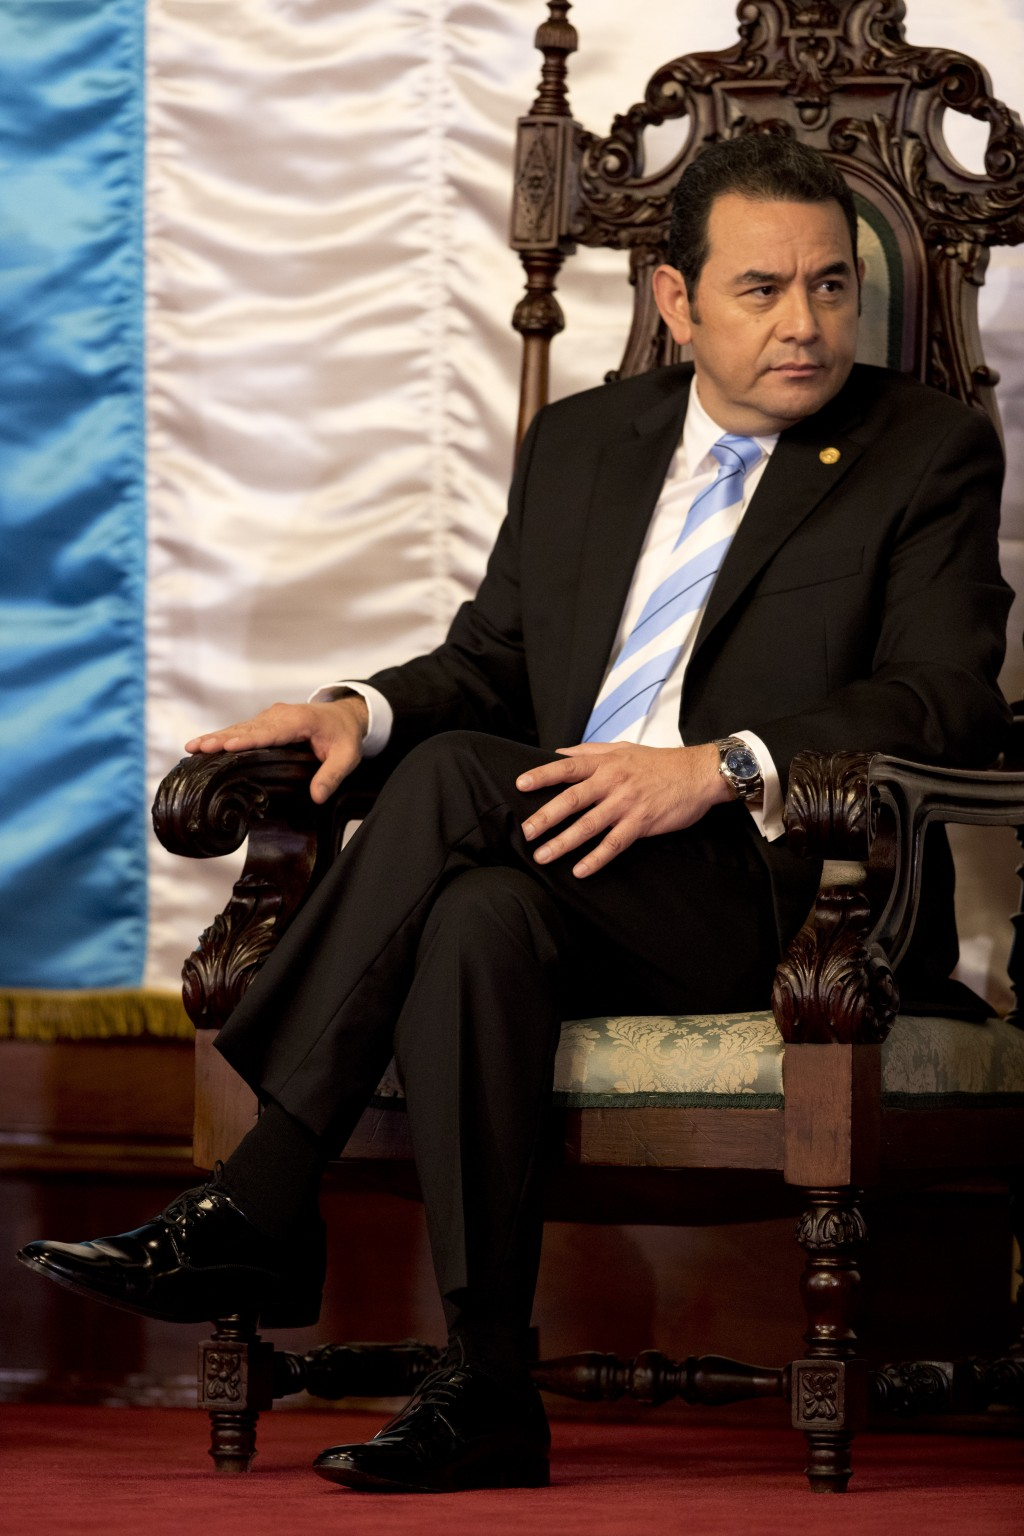 Guatemalan President Jimmy Morales attends a welcoming ceremony for ambassadors, in Guatemala City, Thursday, Jan. 10, 2019. Guatemala's Constitutiona